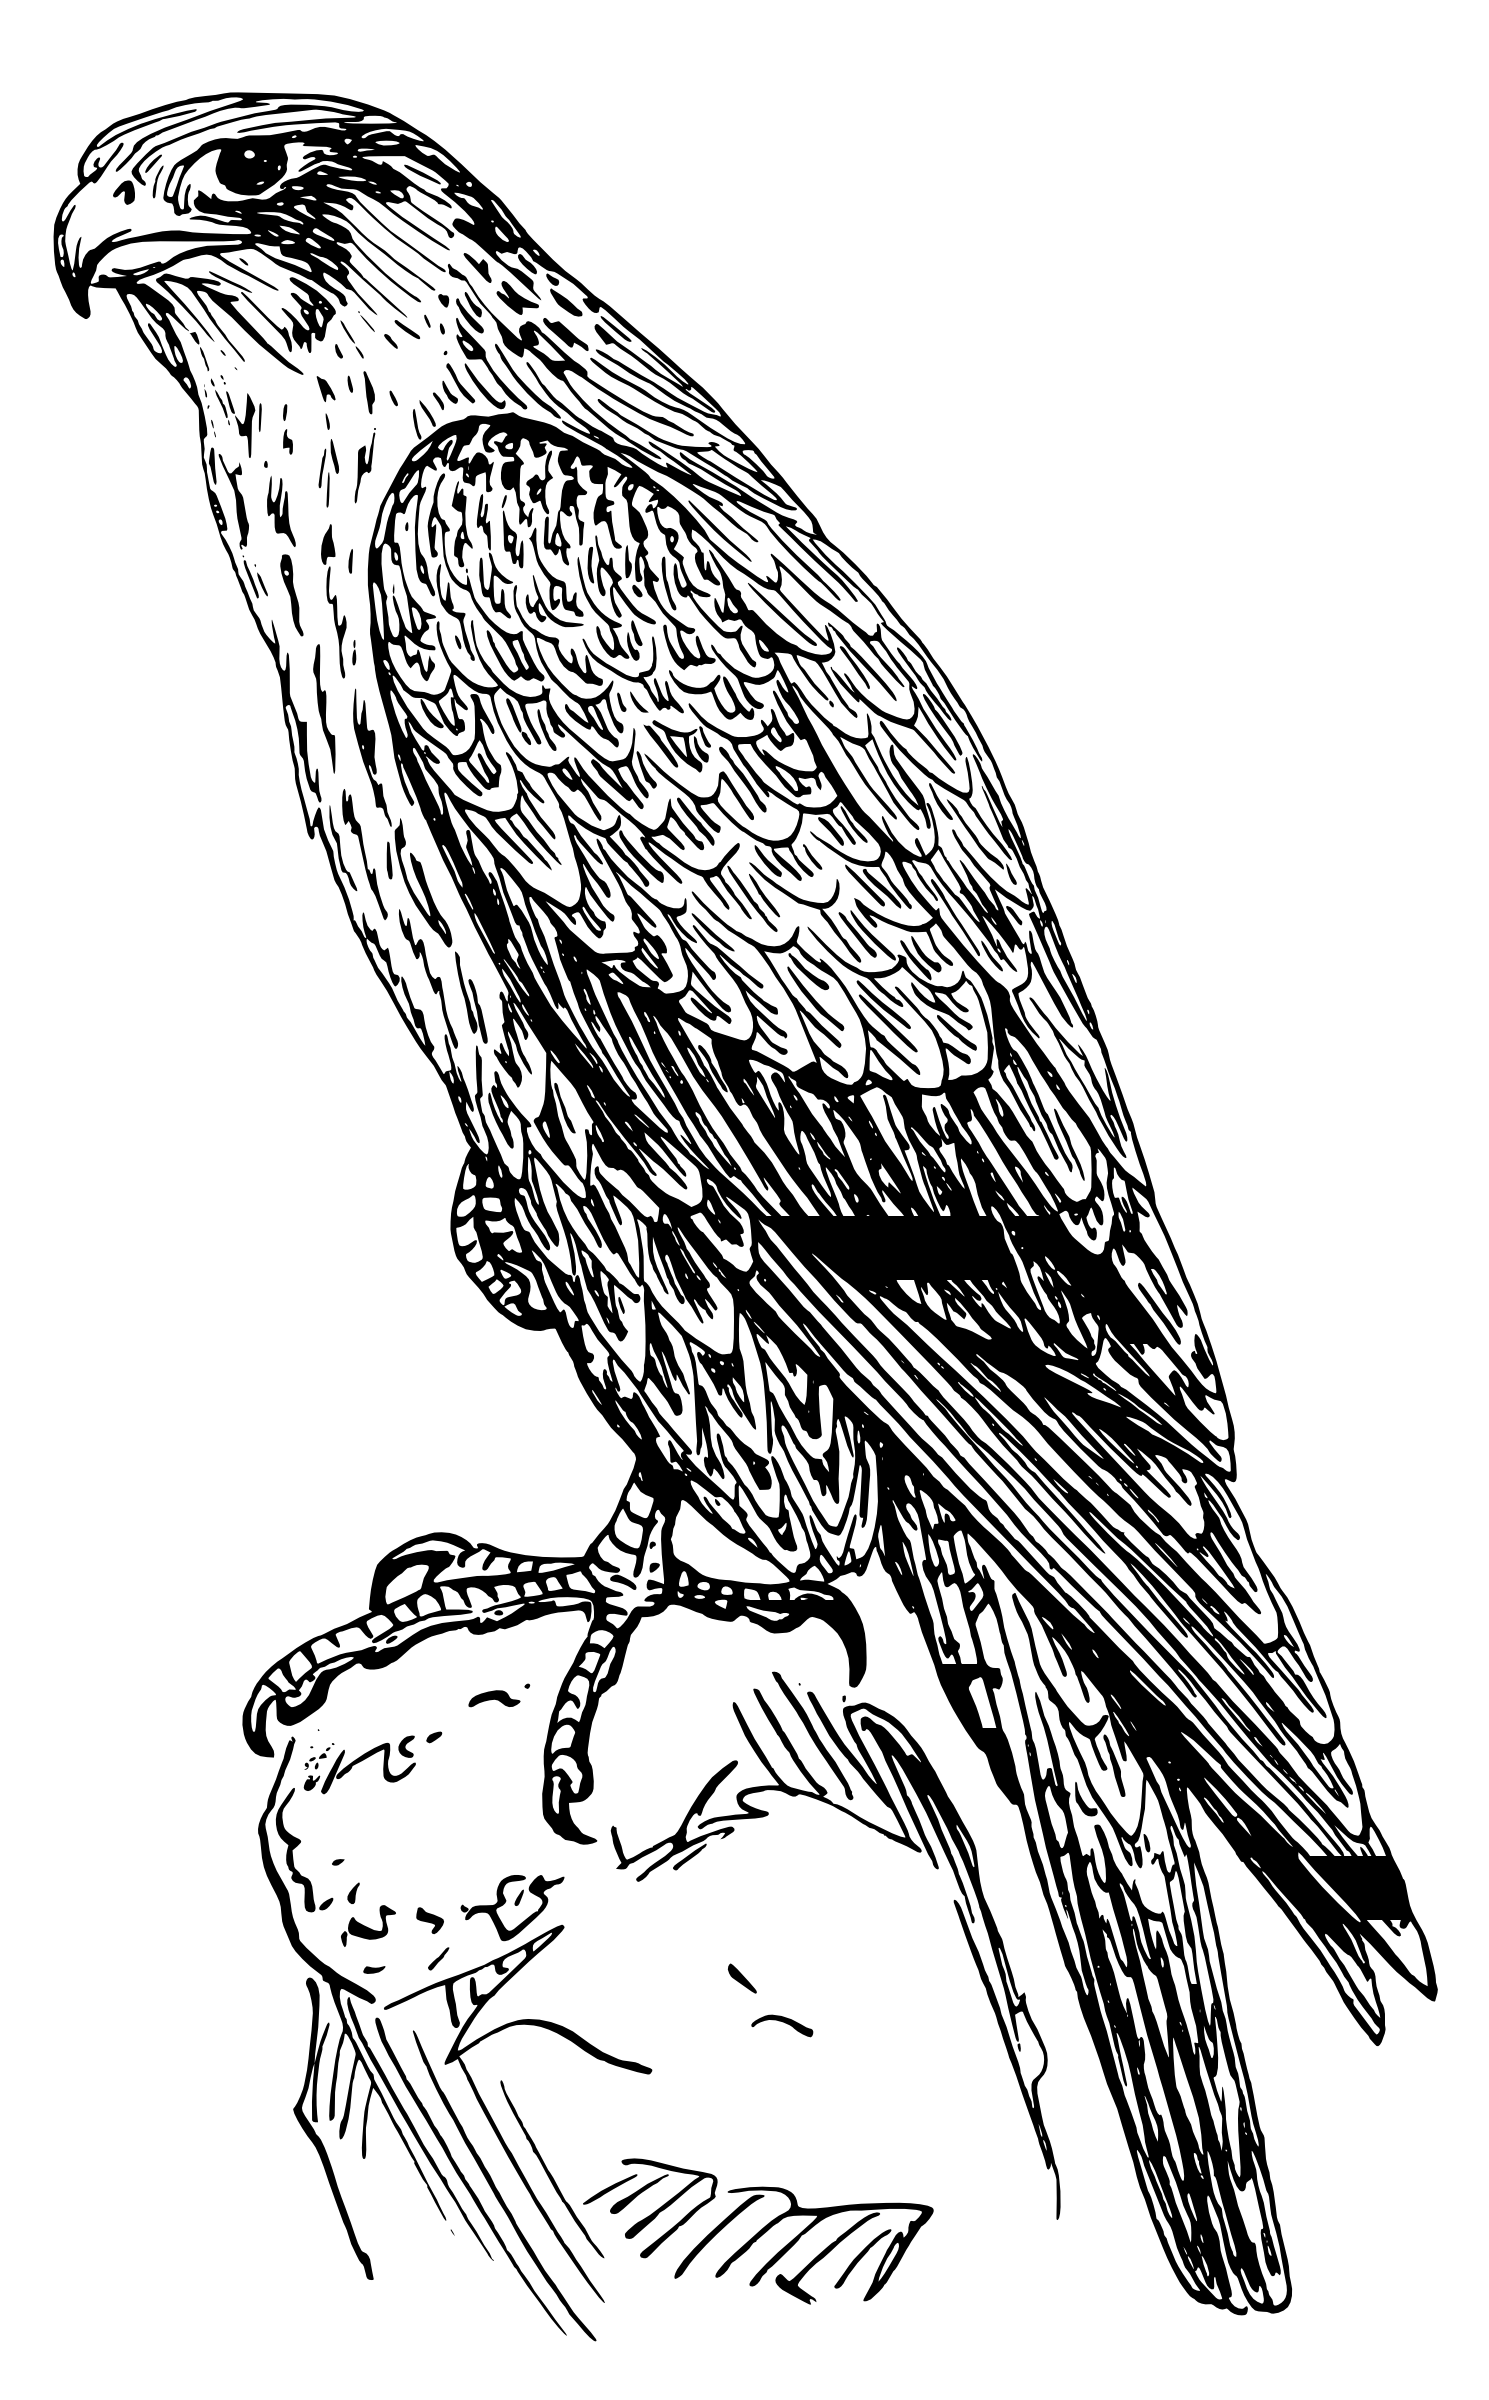 Peregrine Falcon clipart #2, Download drawings